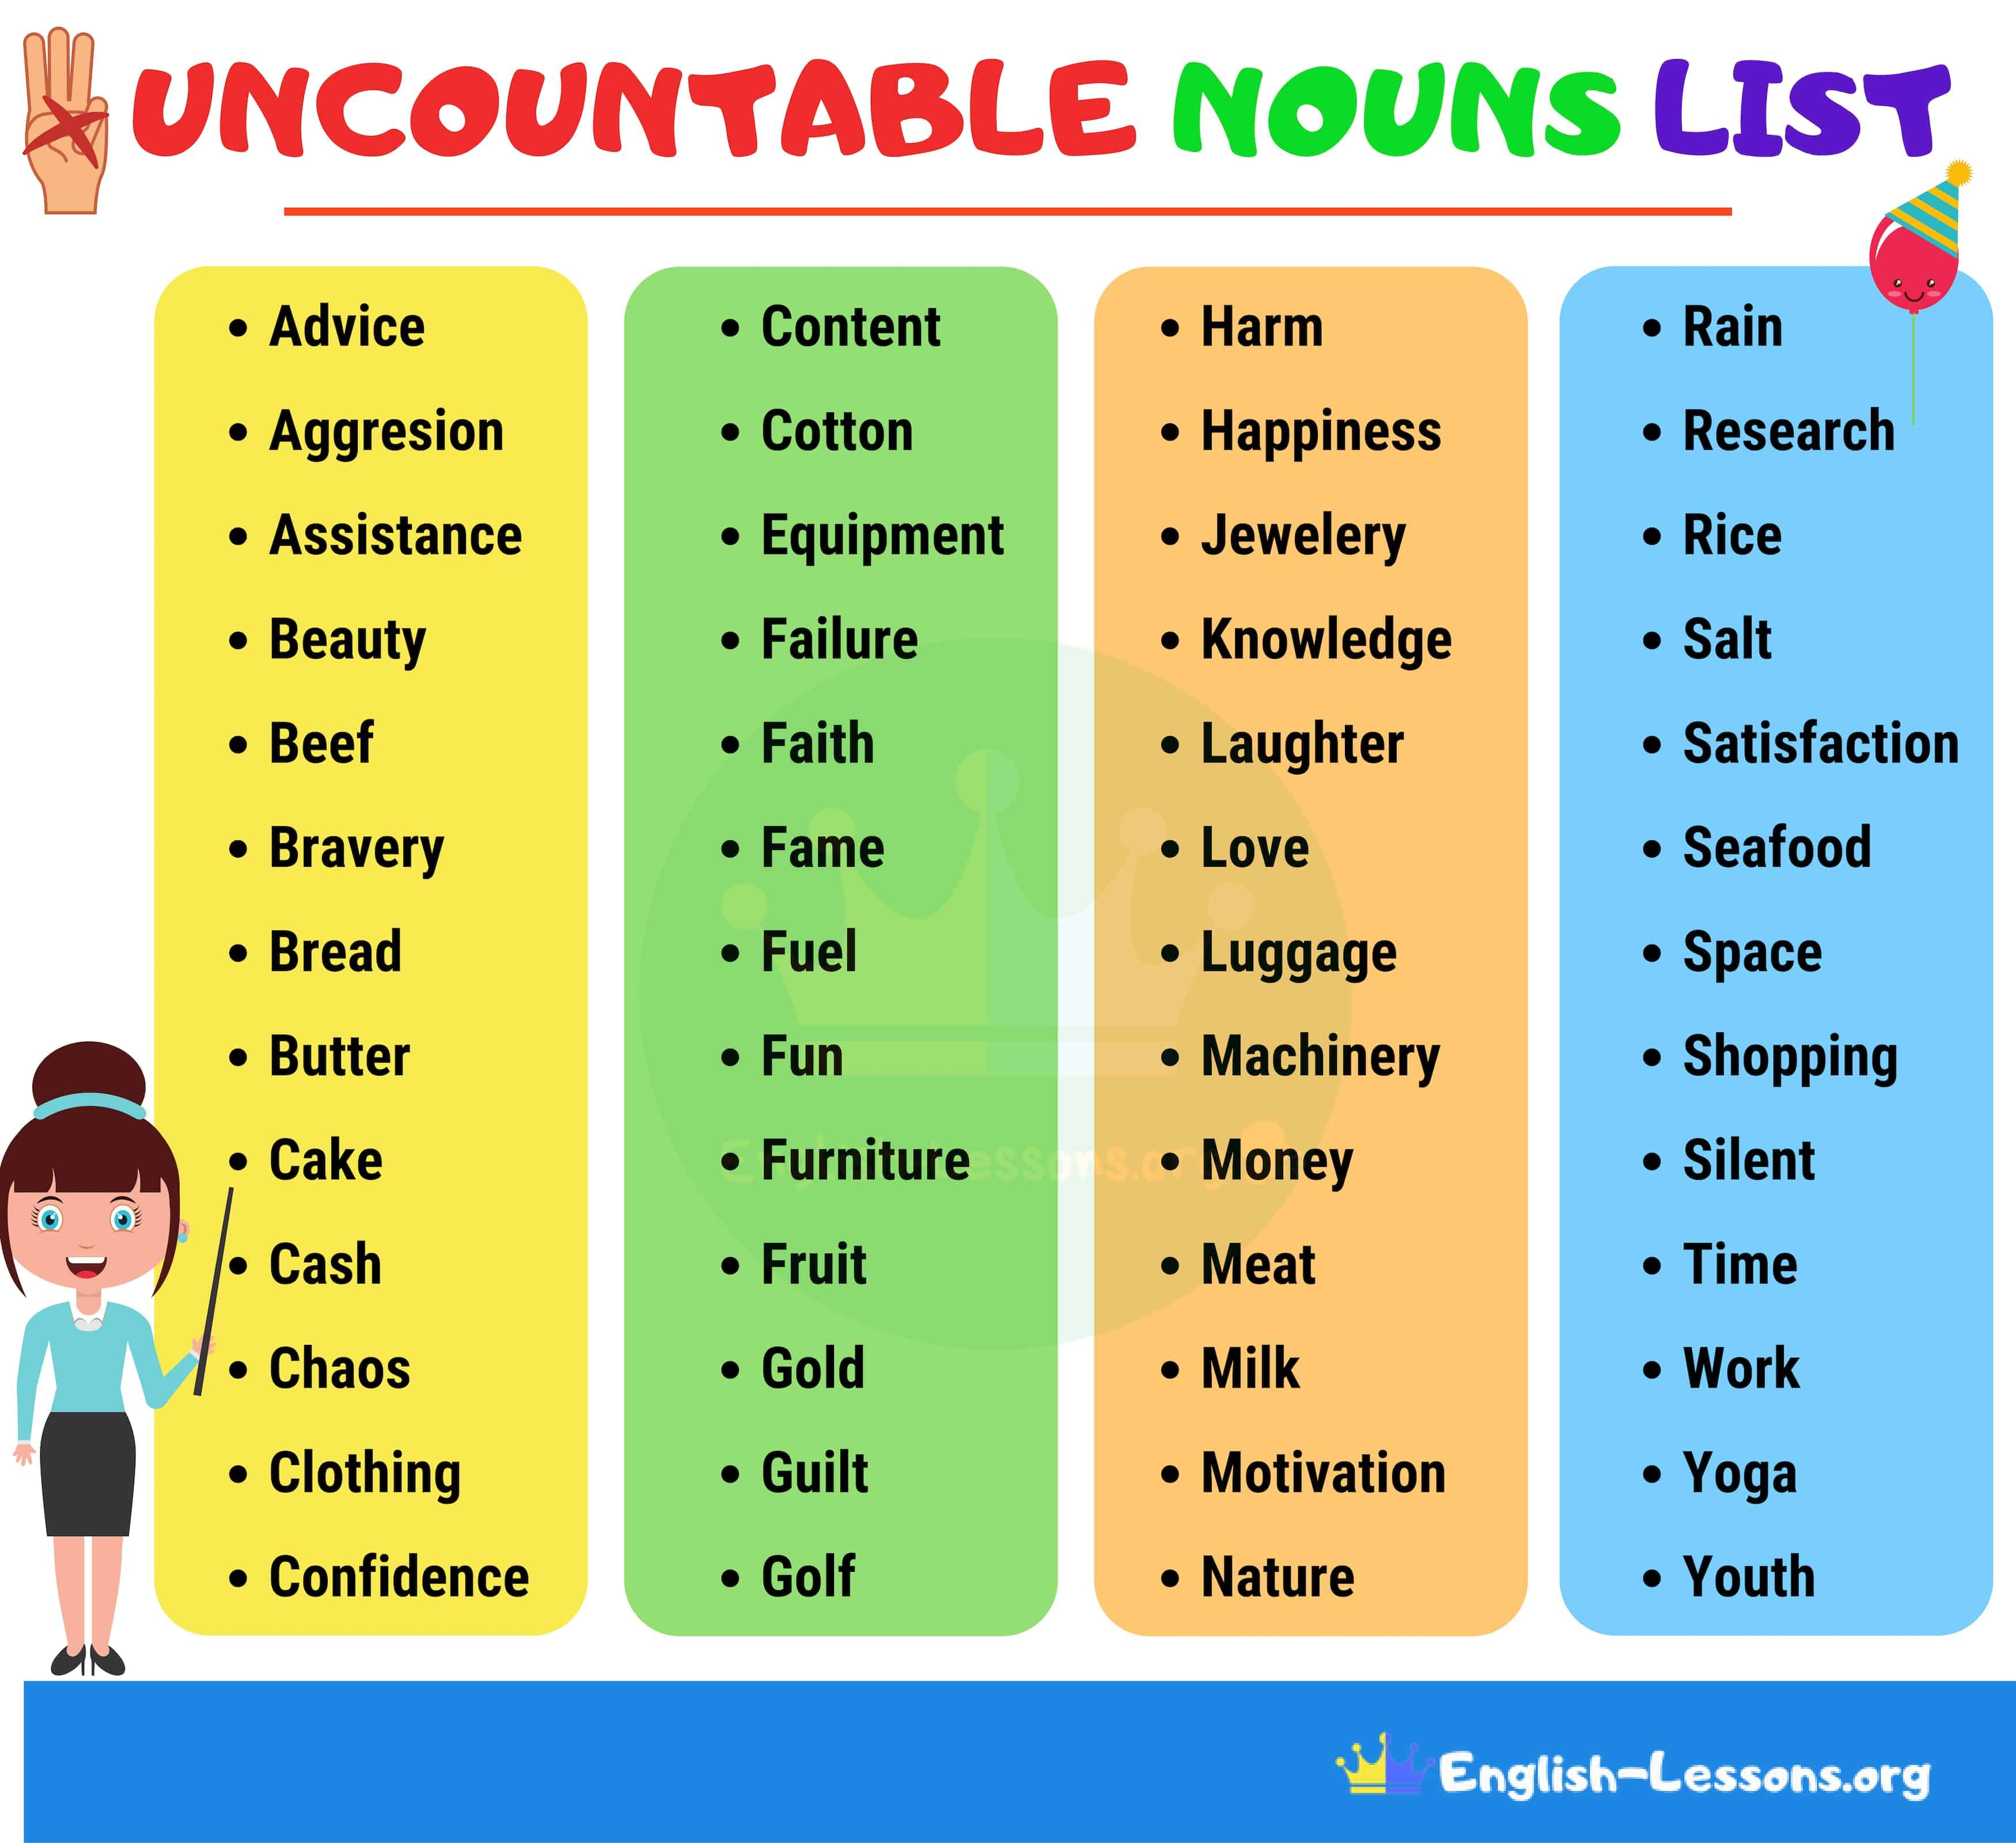 List Of Common Uncountable Nouns In English